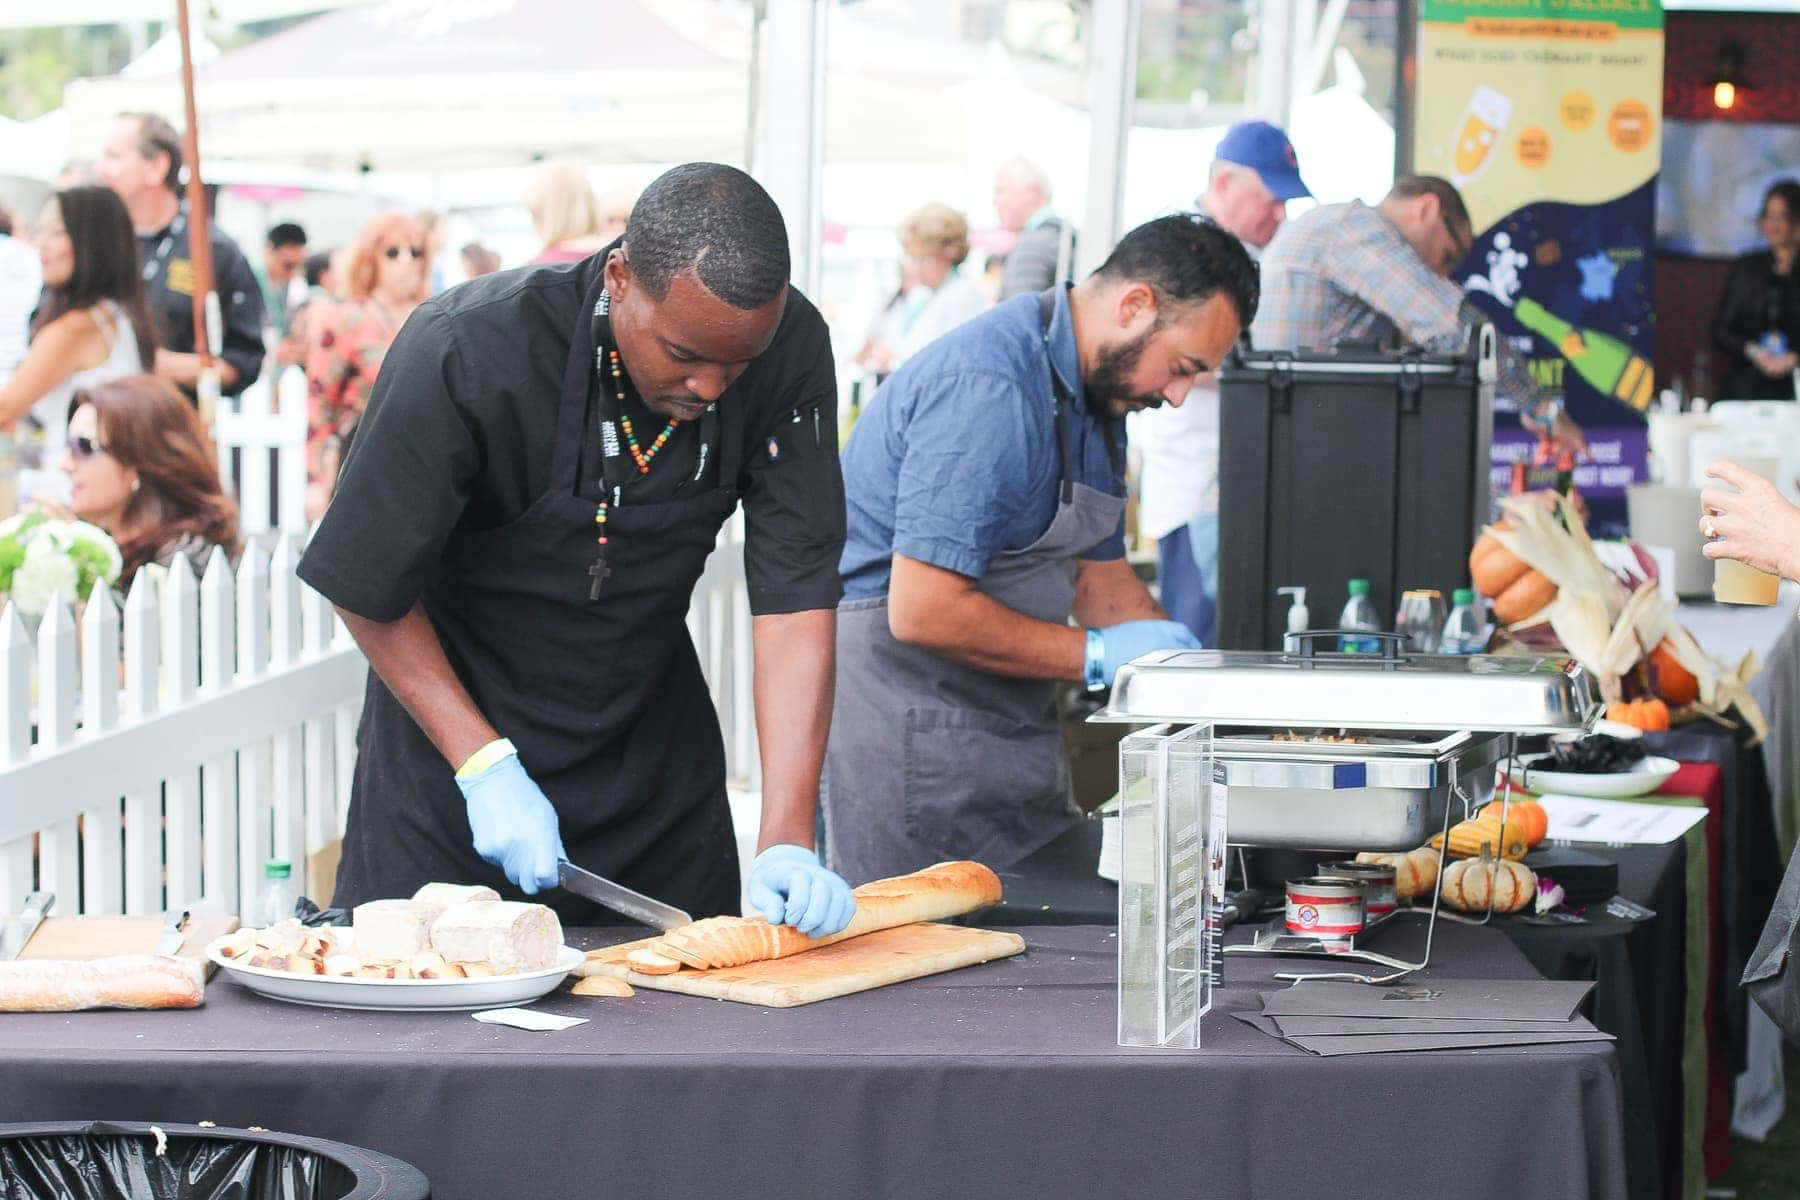 chefs cooking outdoors